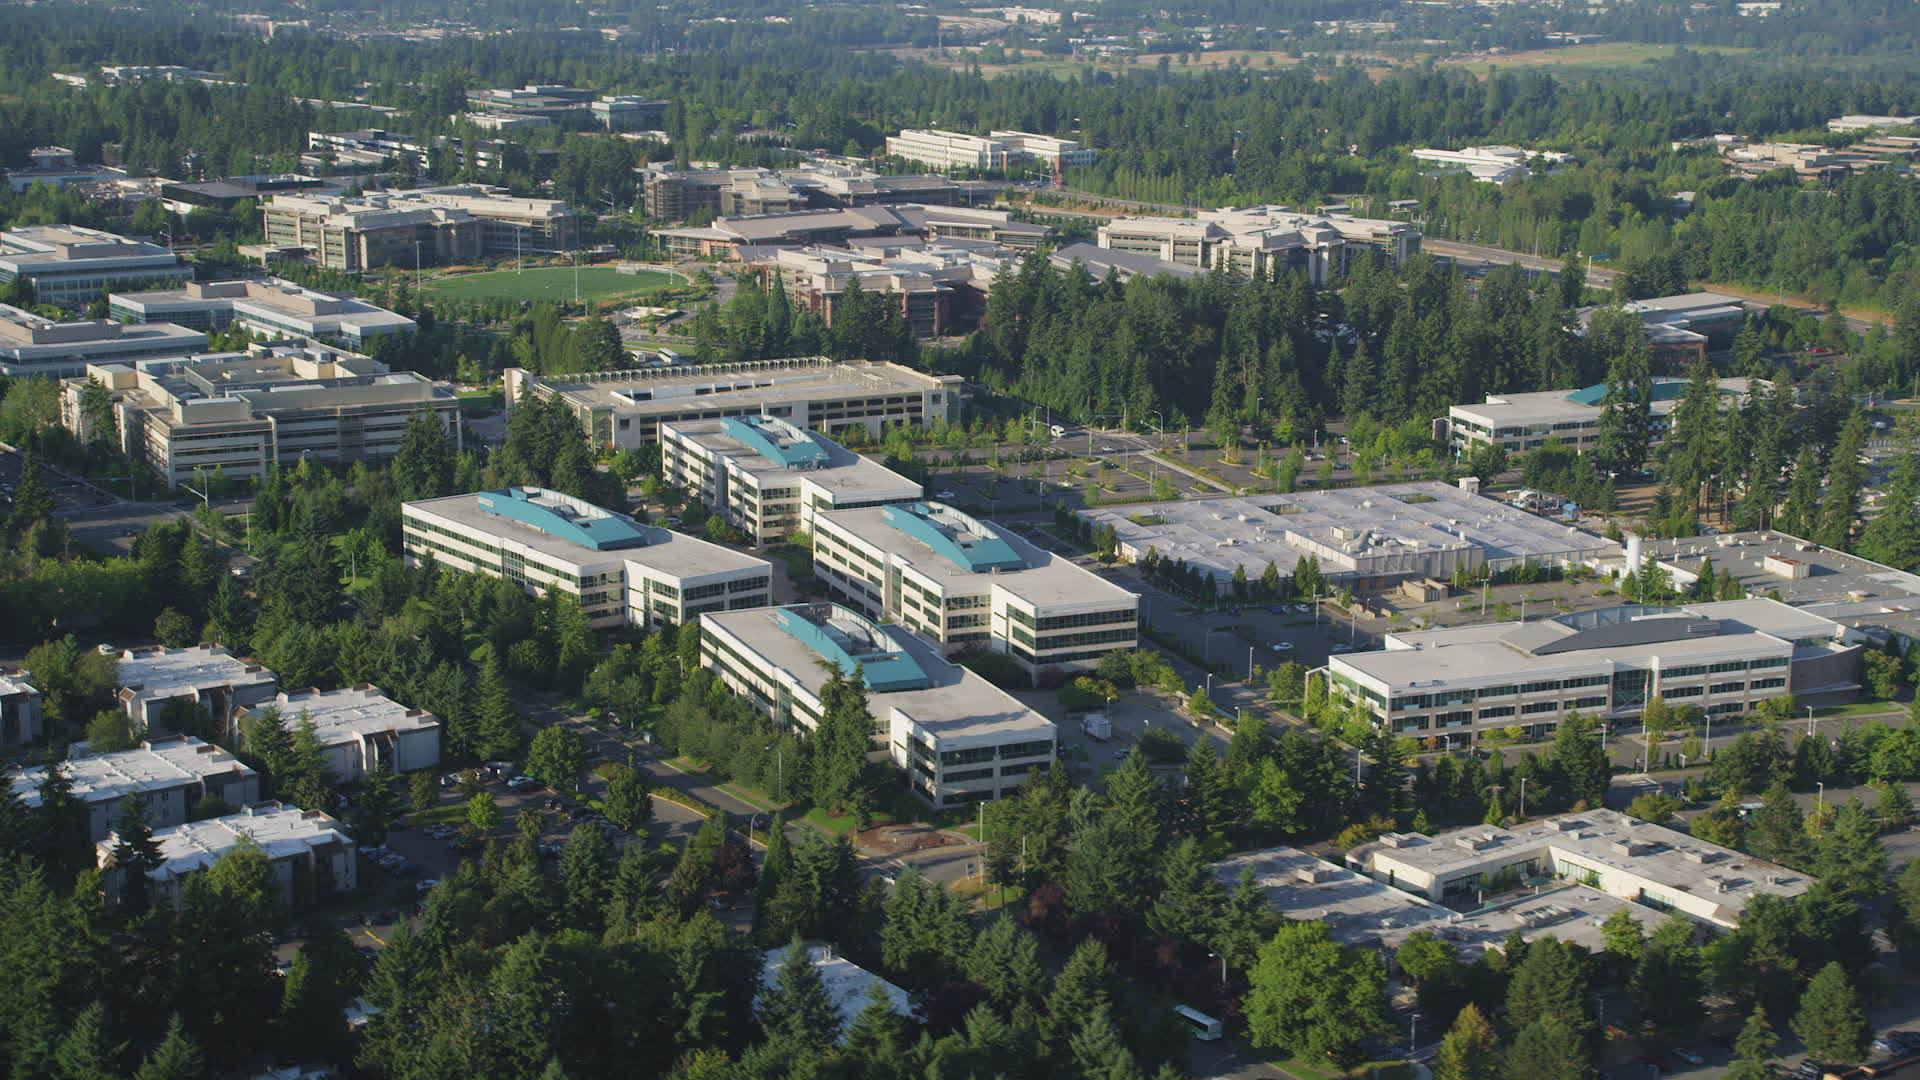 5K stock footage aerial video of Microsoft Headquarter office complex,  Redmond, Washington Aerial Stock Footage AX49_038 | Axiom Images